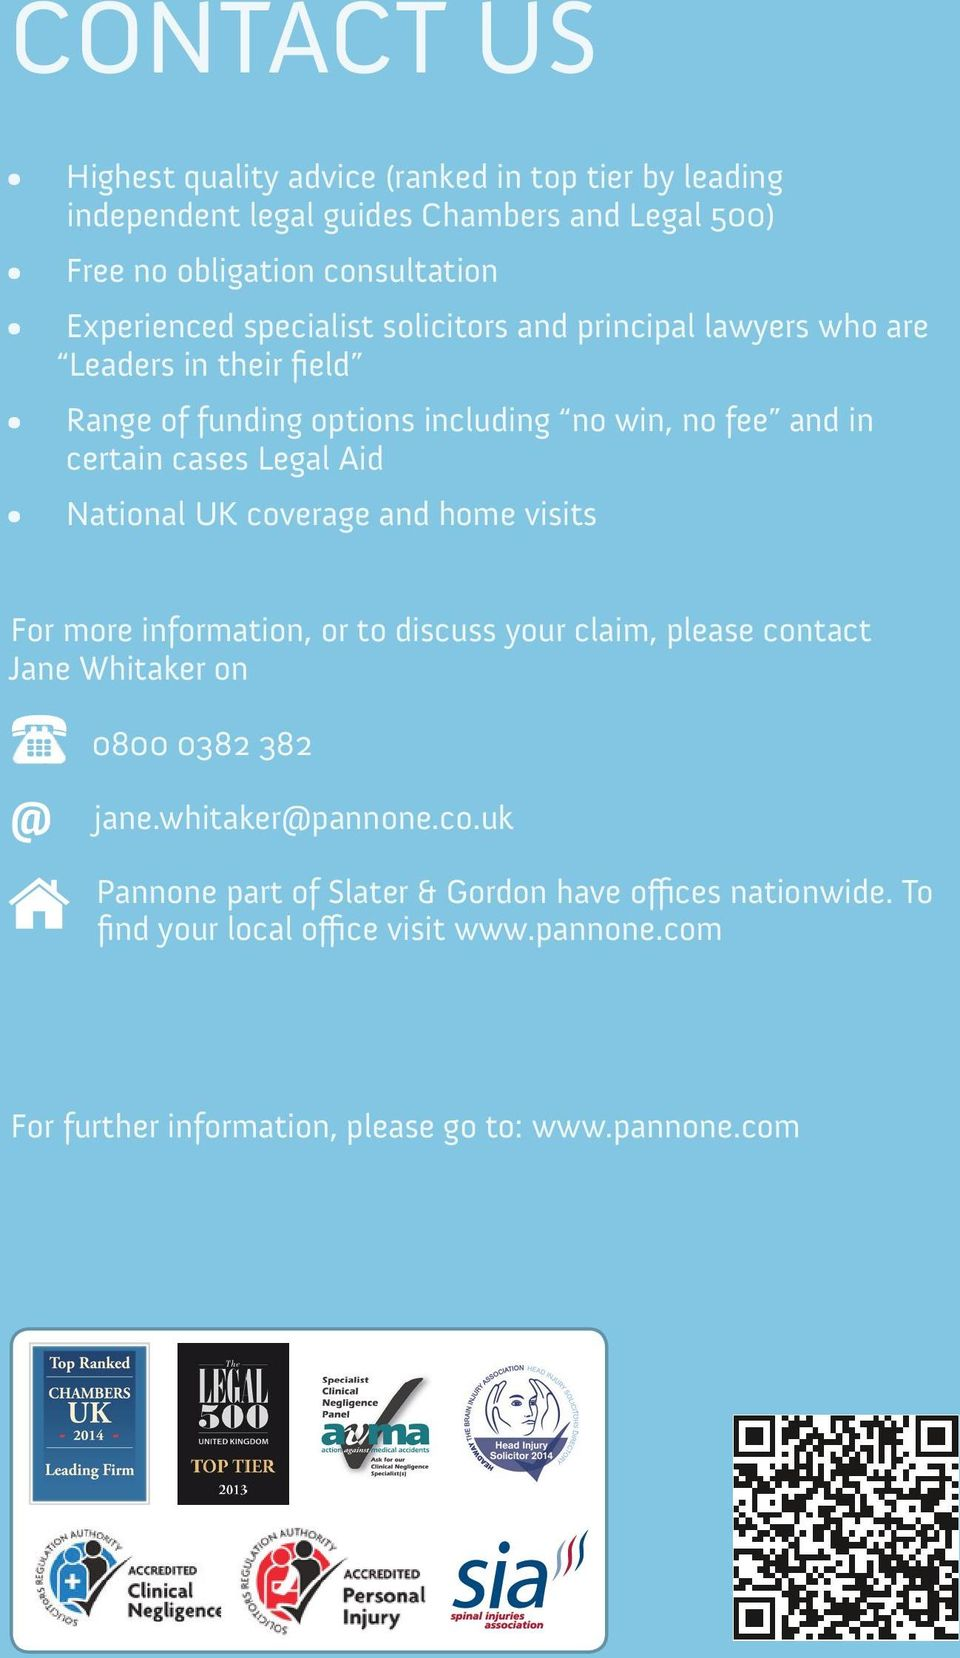 National UK coverage and home visits For more information, or to discuss your claim, please contact Jane Whitaker on 0800 0382 382 @ jane.whitaker@pannone.co.uk Pannone part of Slater & Gordon have offices nationwide.